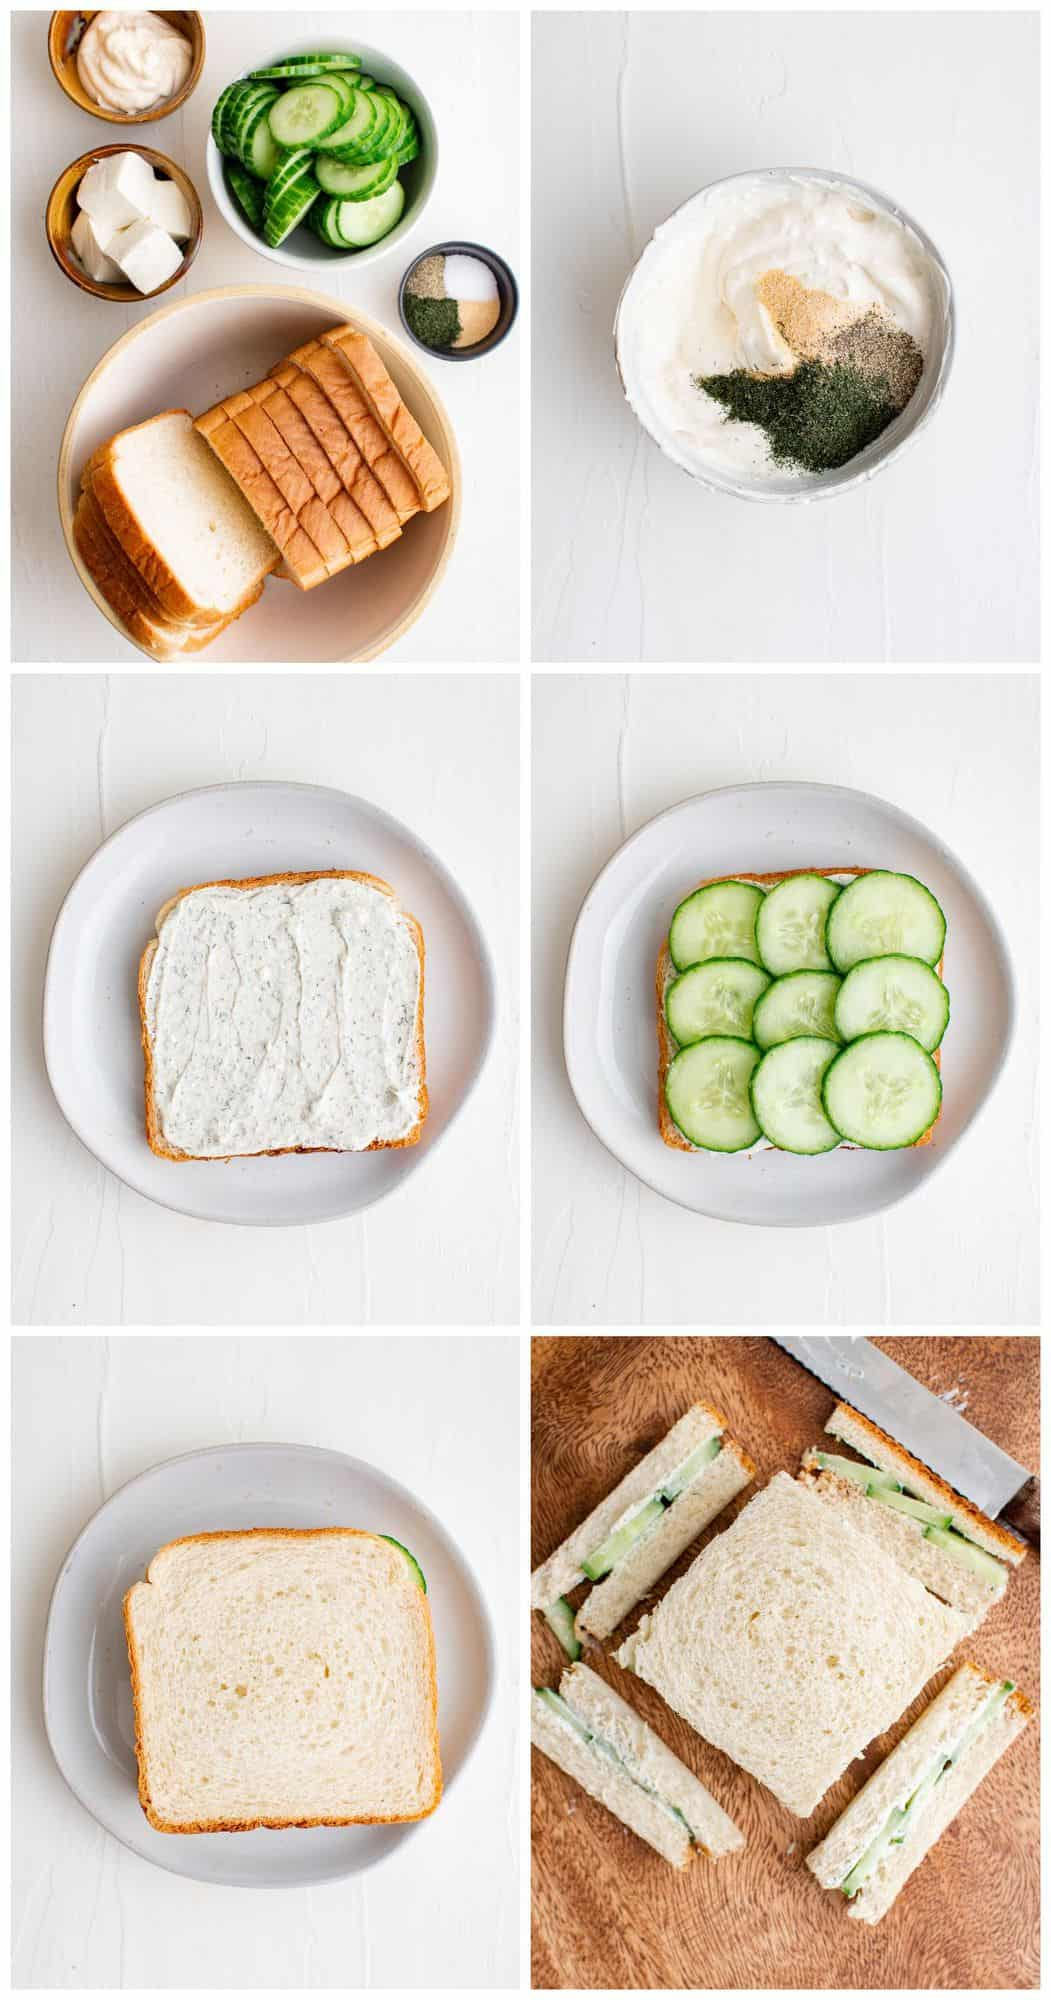 step by step photos for how to make cucumber sandwiches